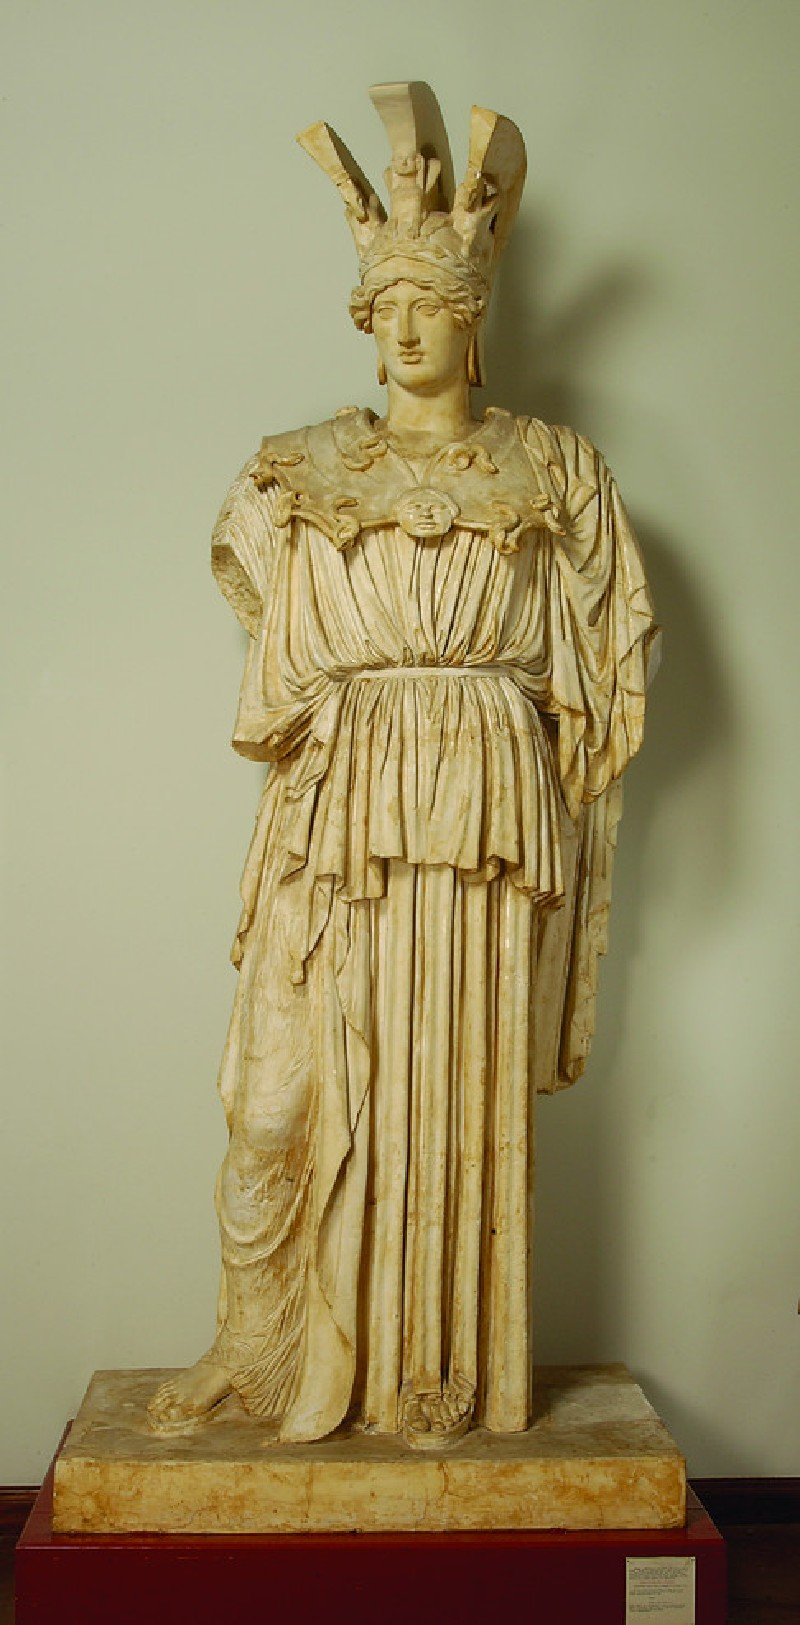 Cast of the Medici Athena (CG.C.79)